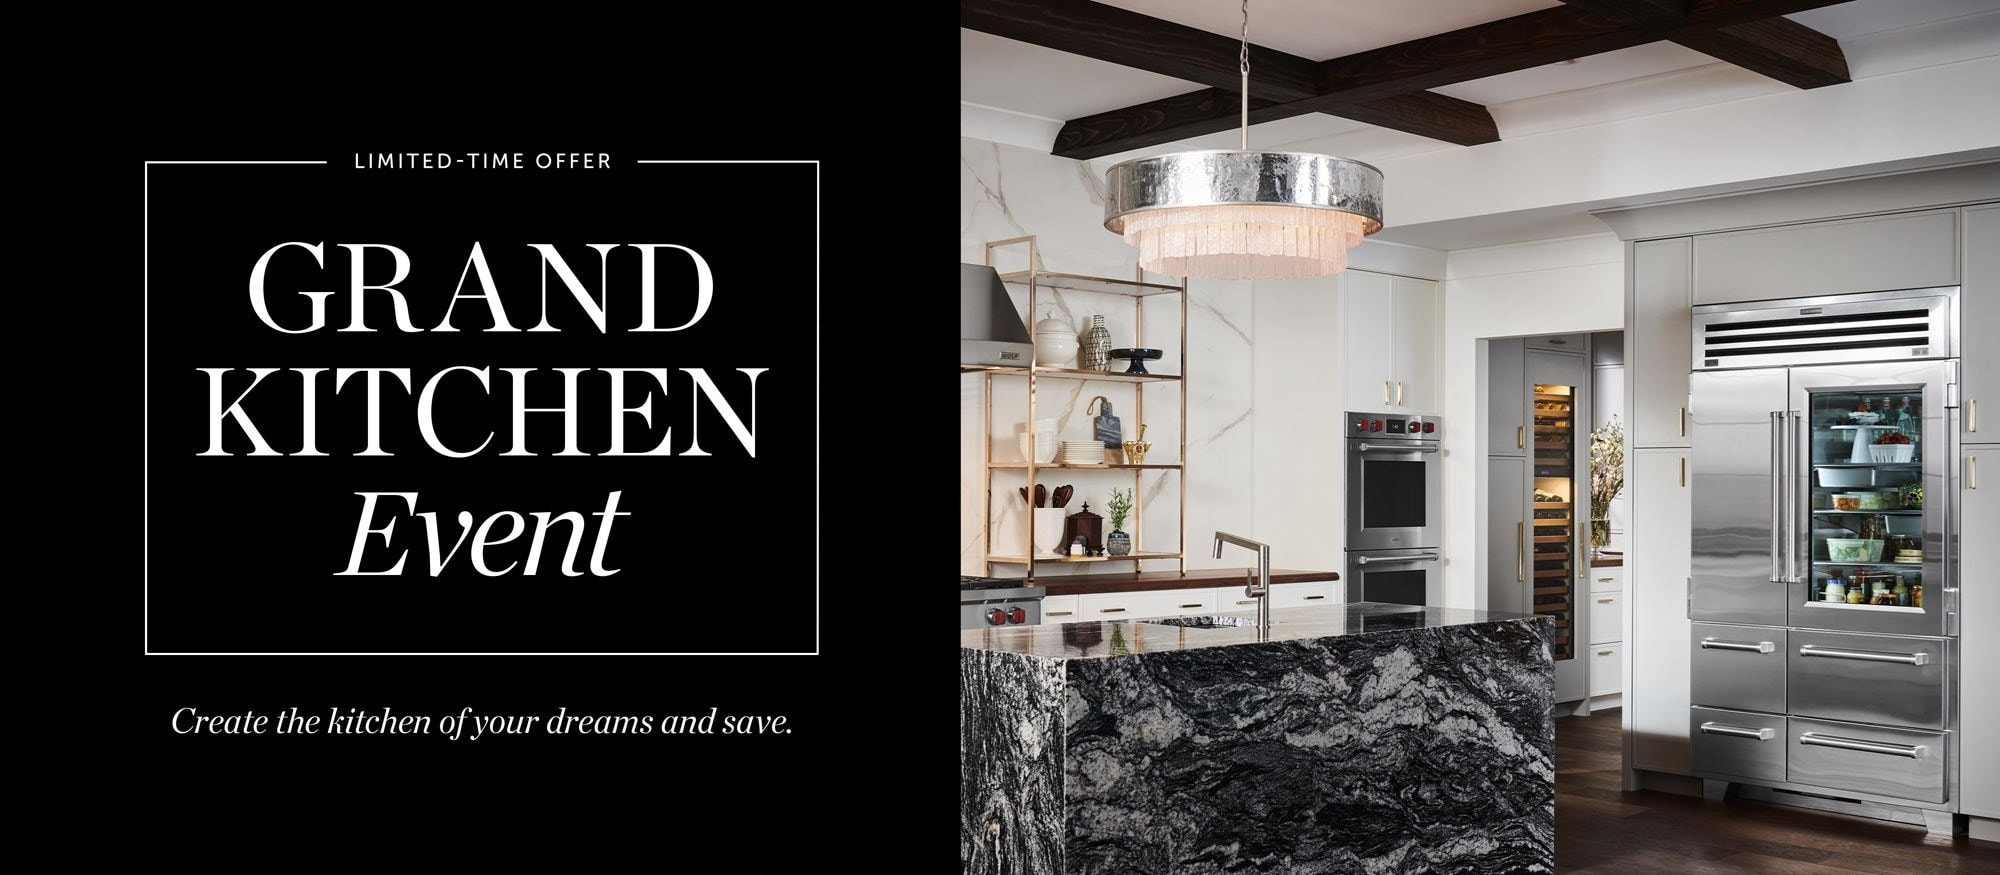 The Sub-Zero, Wolf, and Cove Grand Kitchen Event. Create the kitchen of your dreams and save.